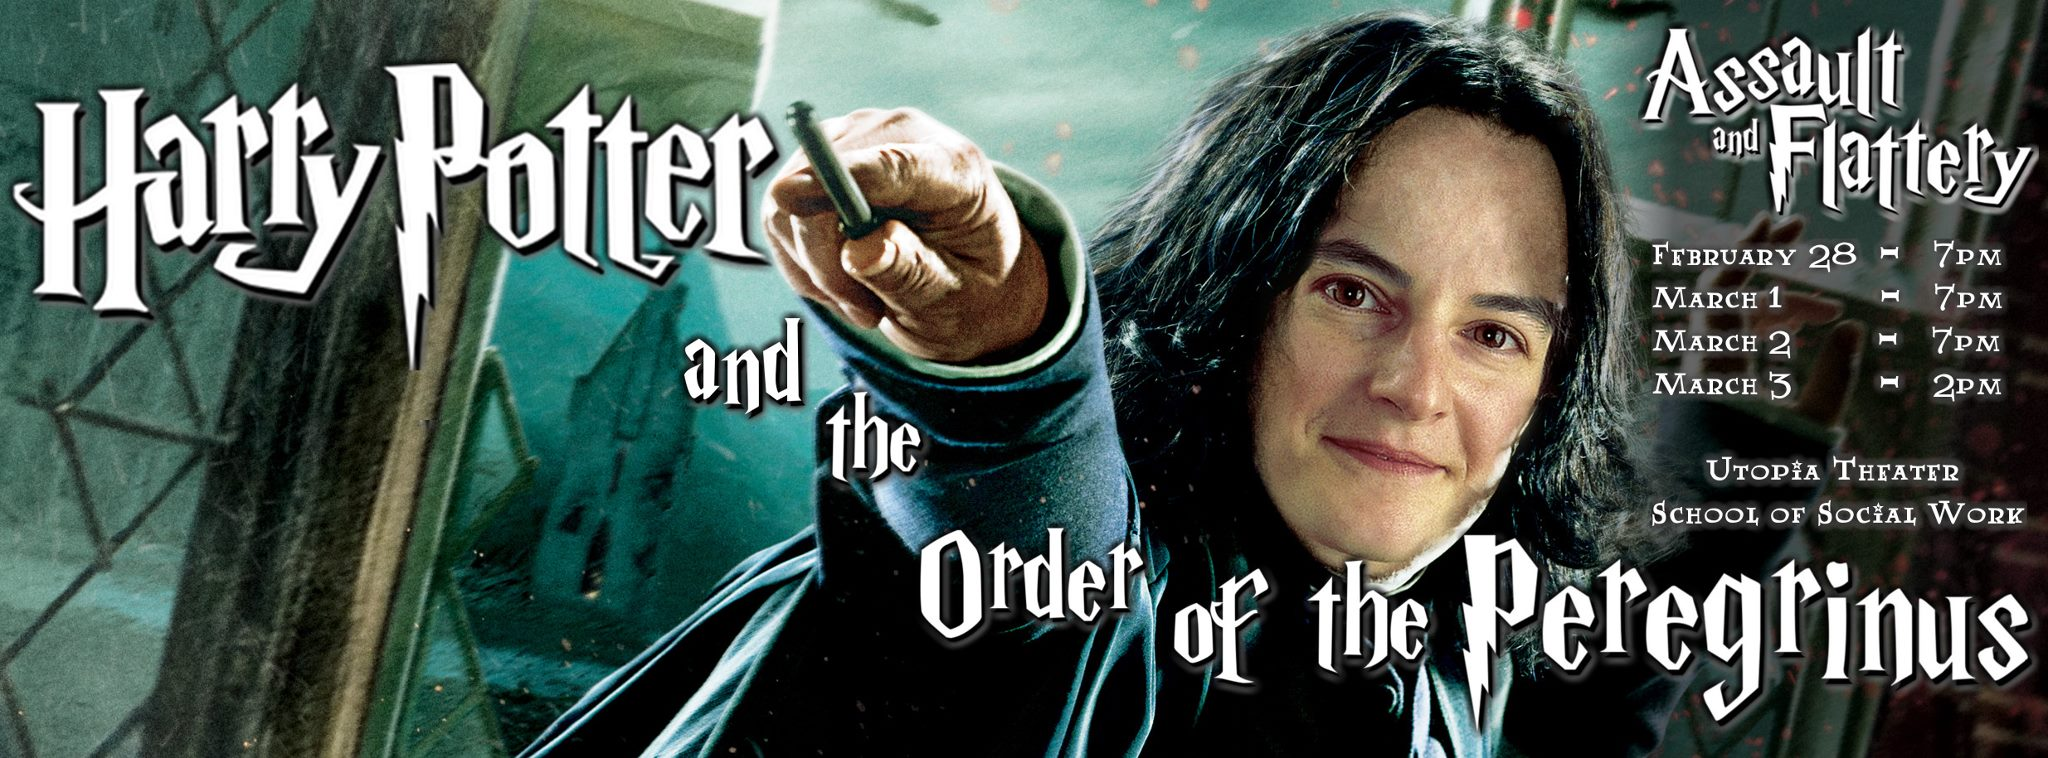 Assault and Flattery Presents Harry Potter and the Order of the Peregrinus, 2013